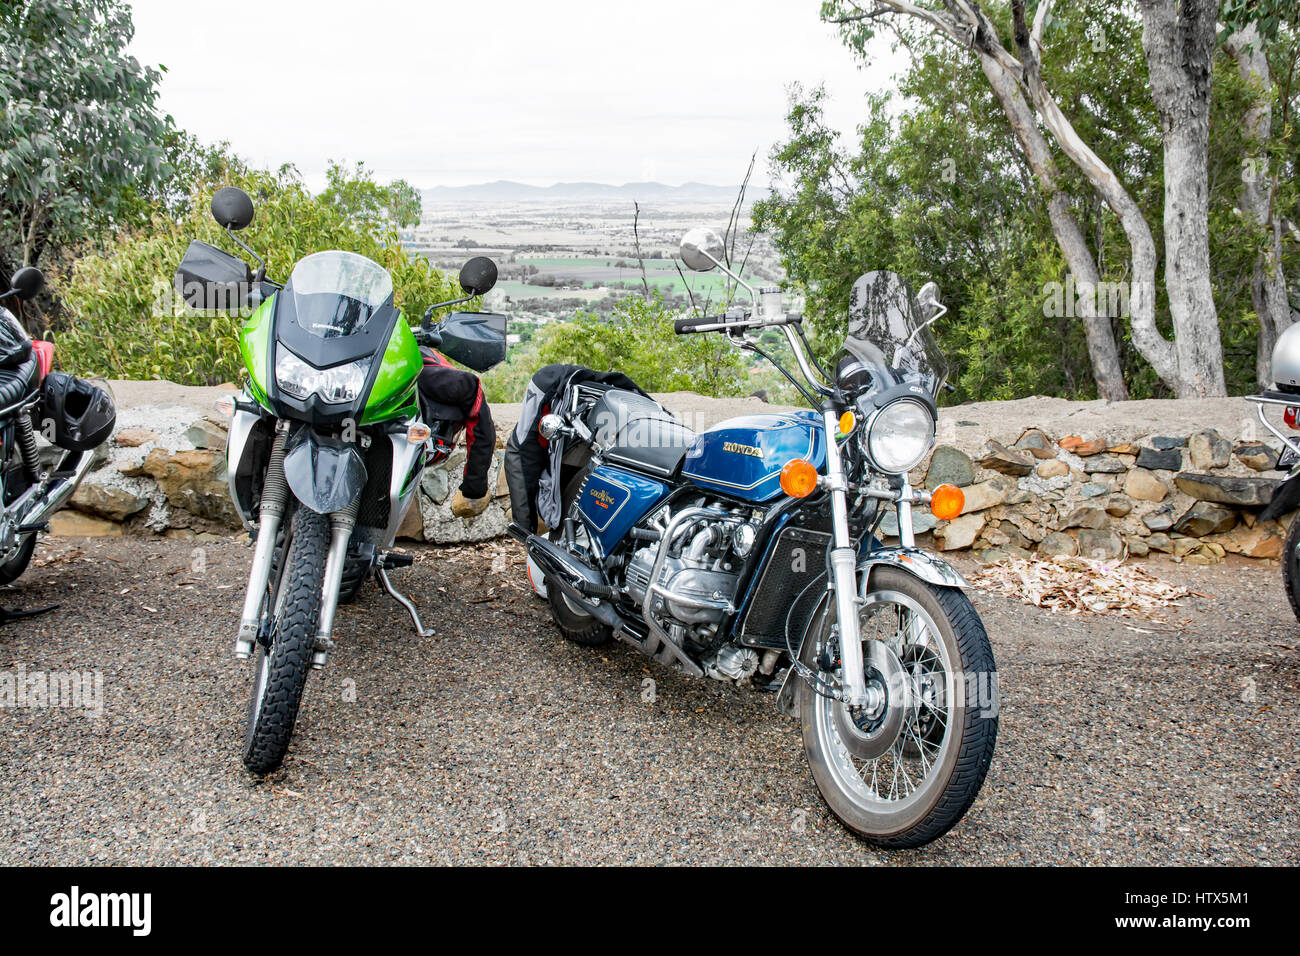 Motorcycle clubs stock photos motorcycle clubs stock for National motor club compensation plan